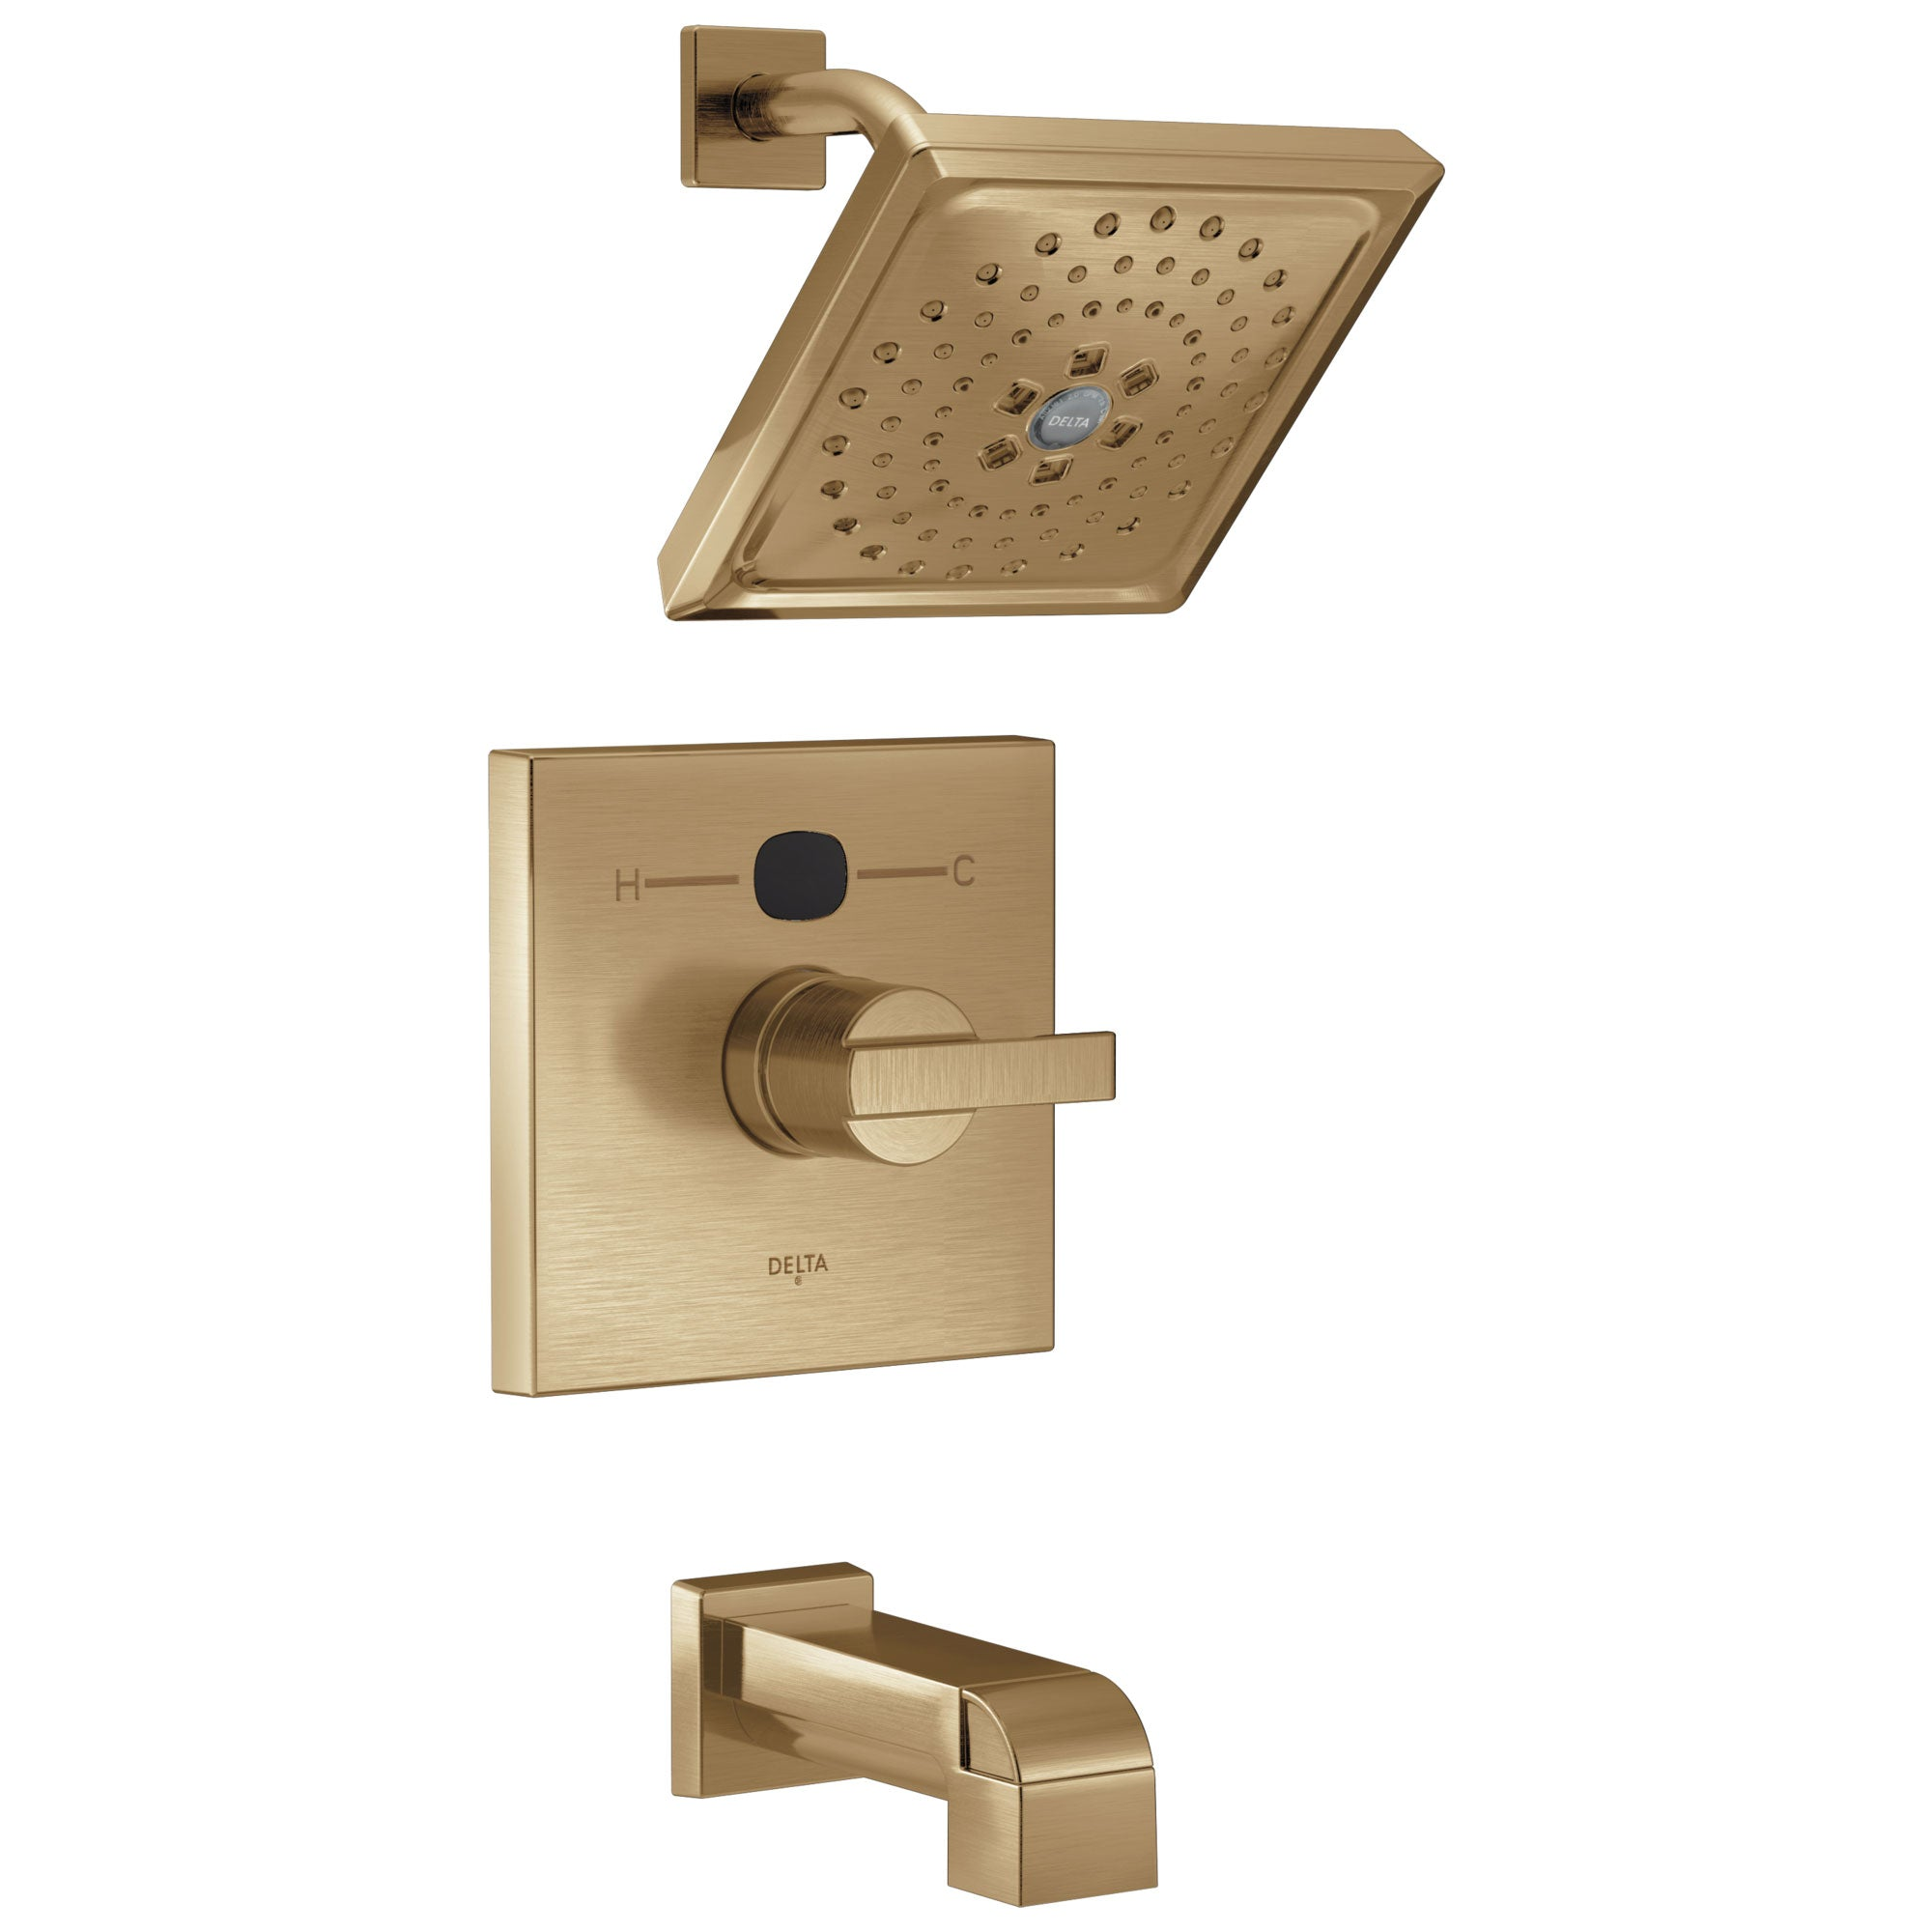 Delta Champagne Bronze Modern 14 Series Digital Display Temp2O One Handle Tub and Shower Combination Faucet Trim (Valve Sold Separately) 667567